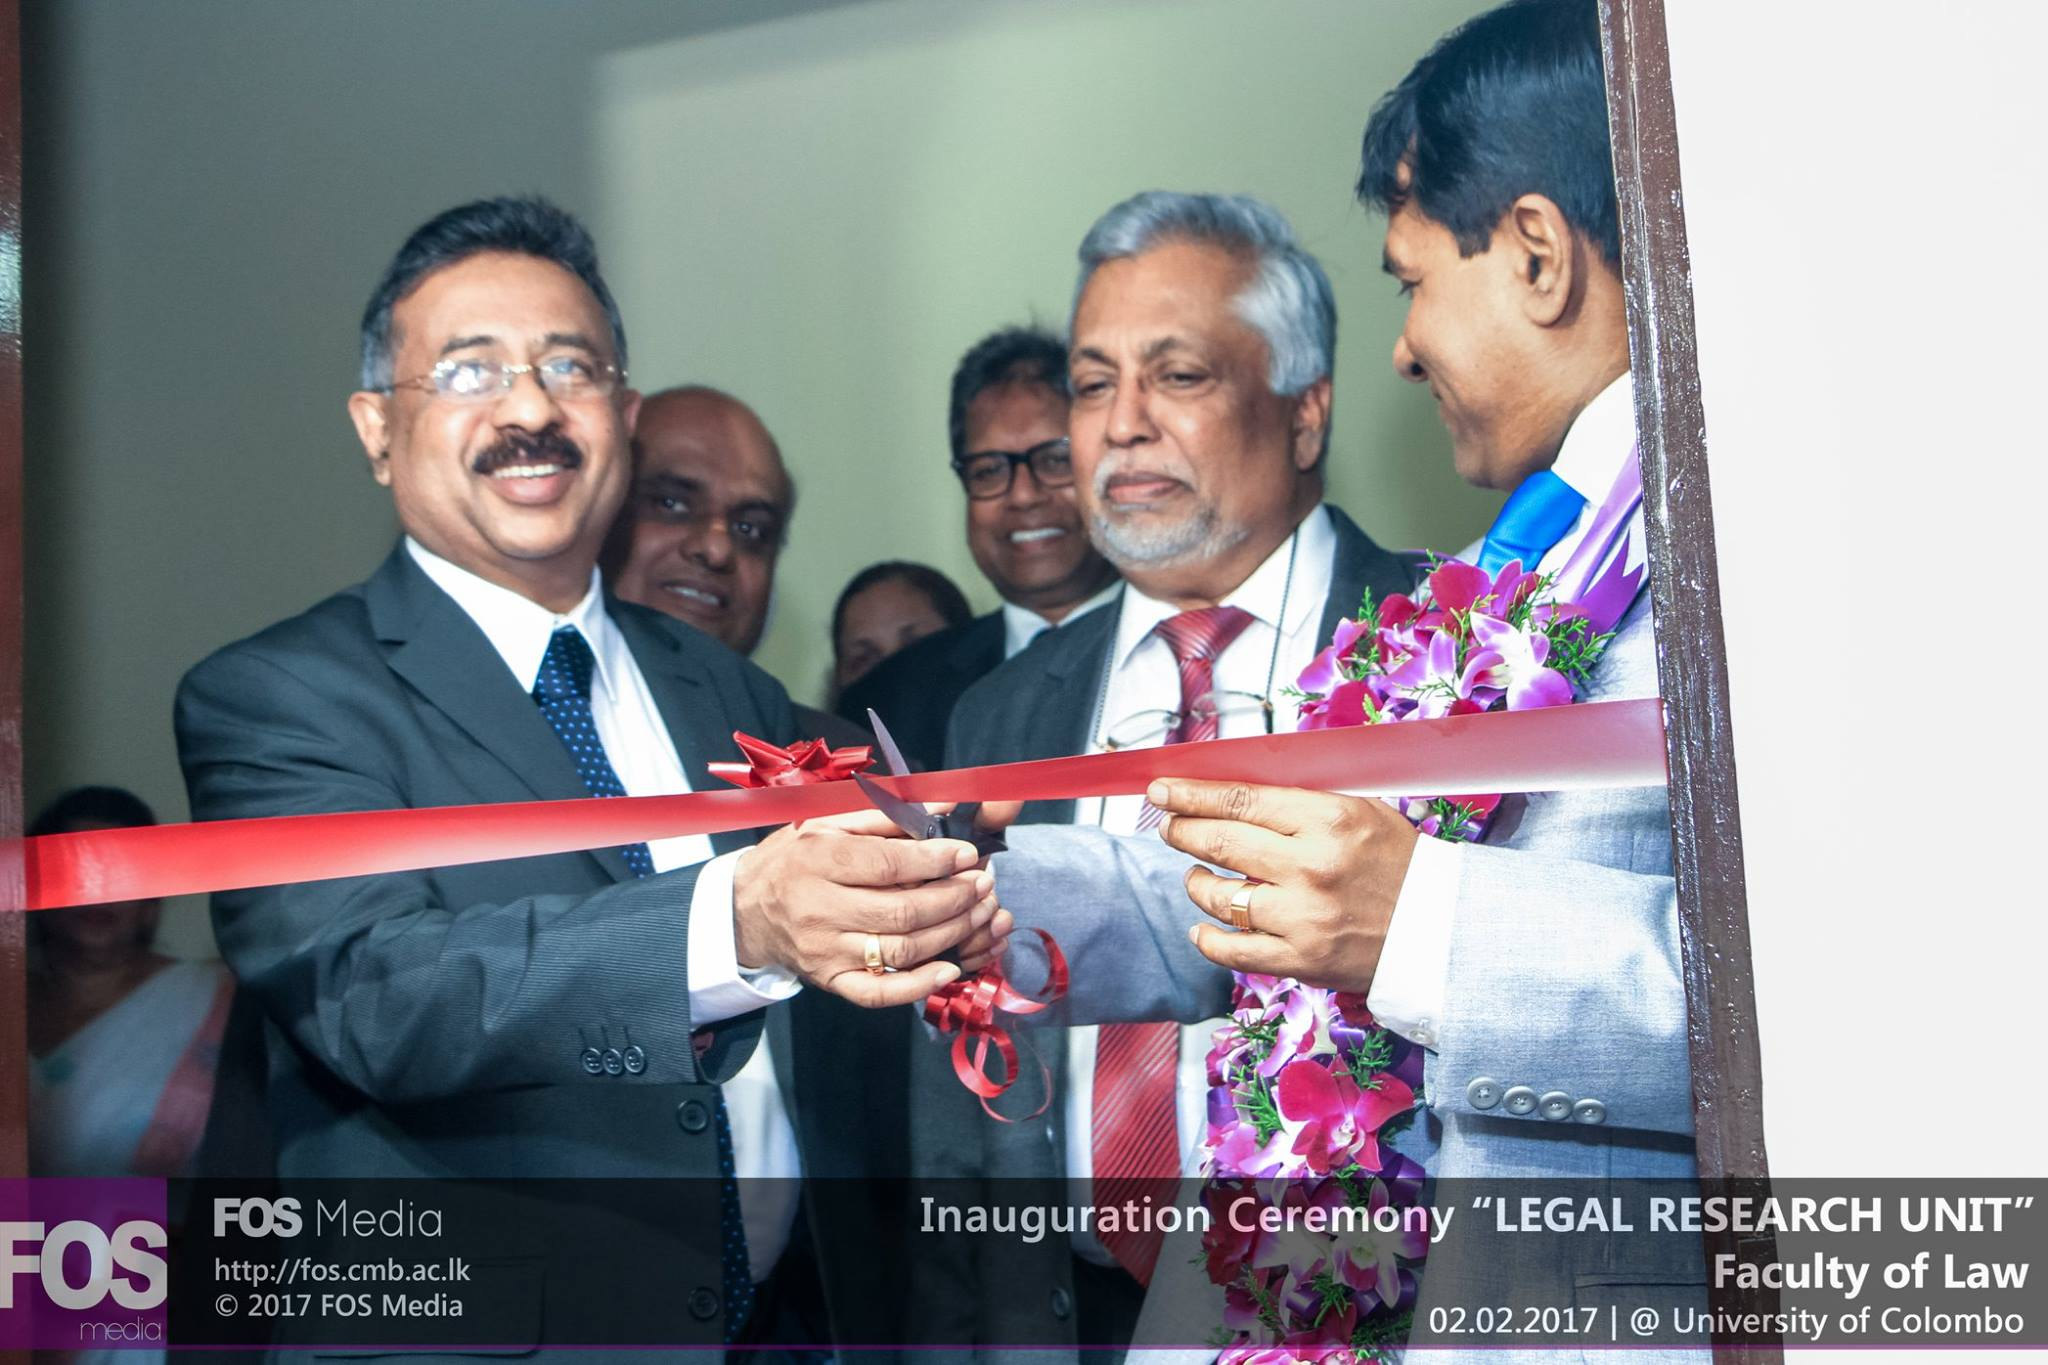 Inauguration Ceremony of Legal Research Unit